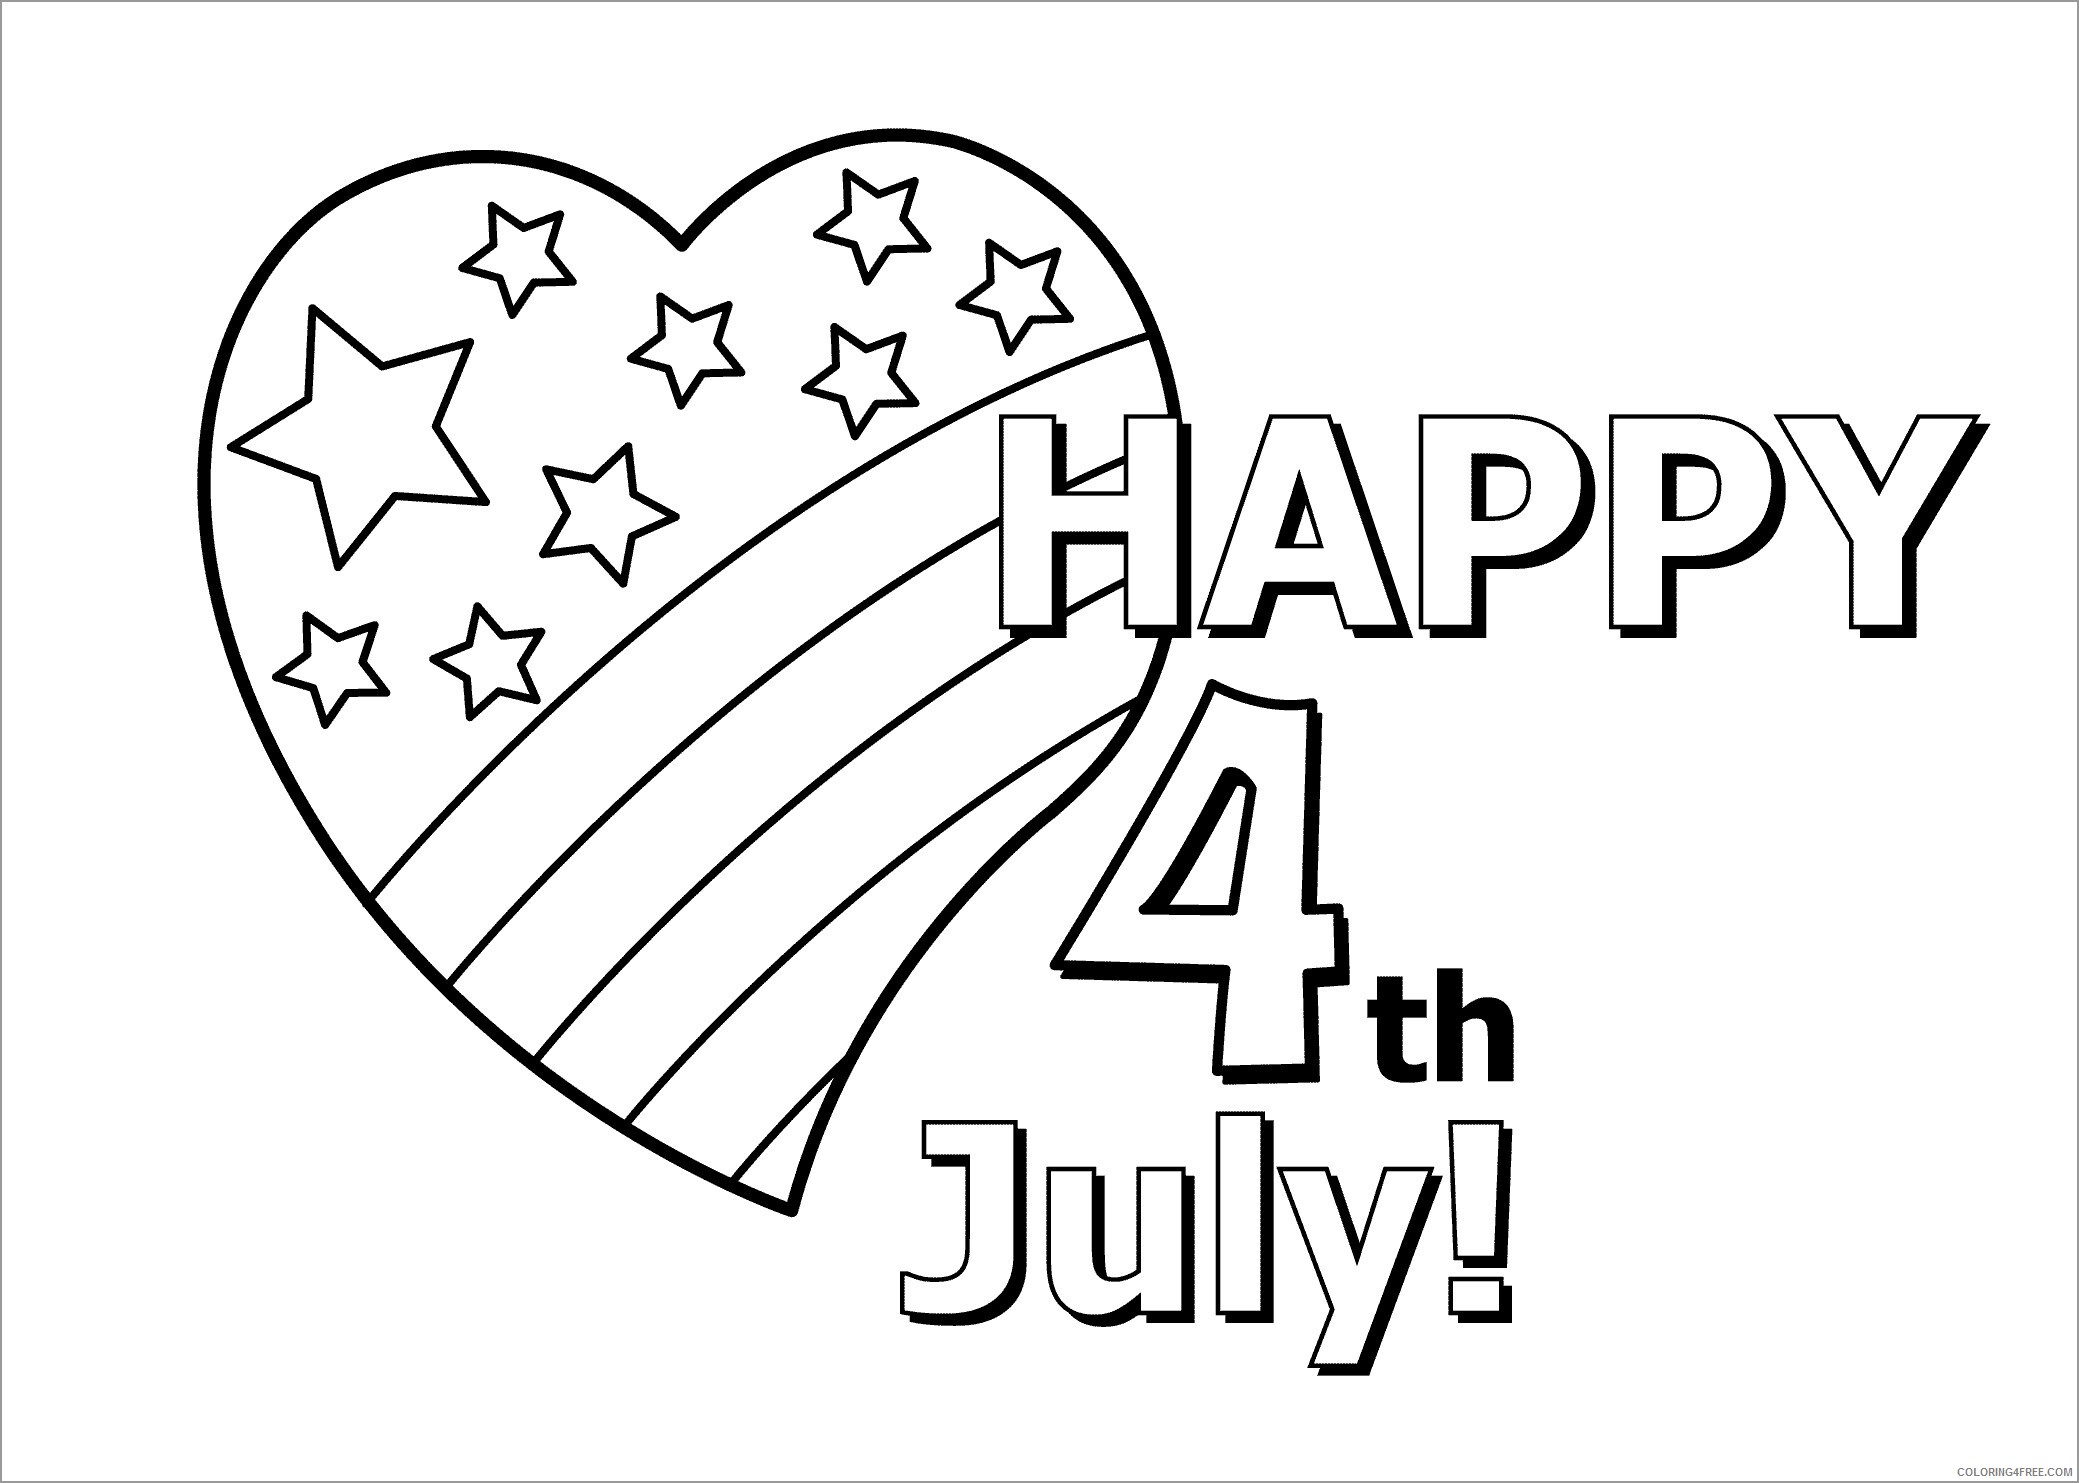 4th Of July Coloring Pages Happy 4th July Printable 2021 0030 Coloring4free Coloring4free Com